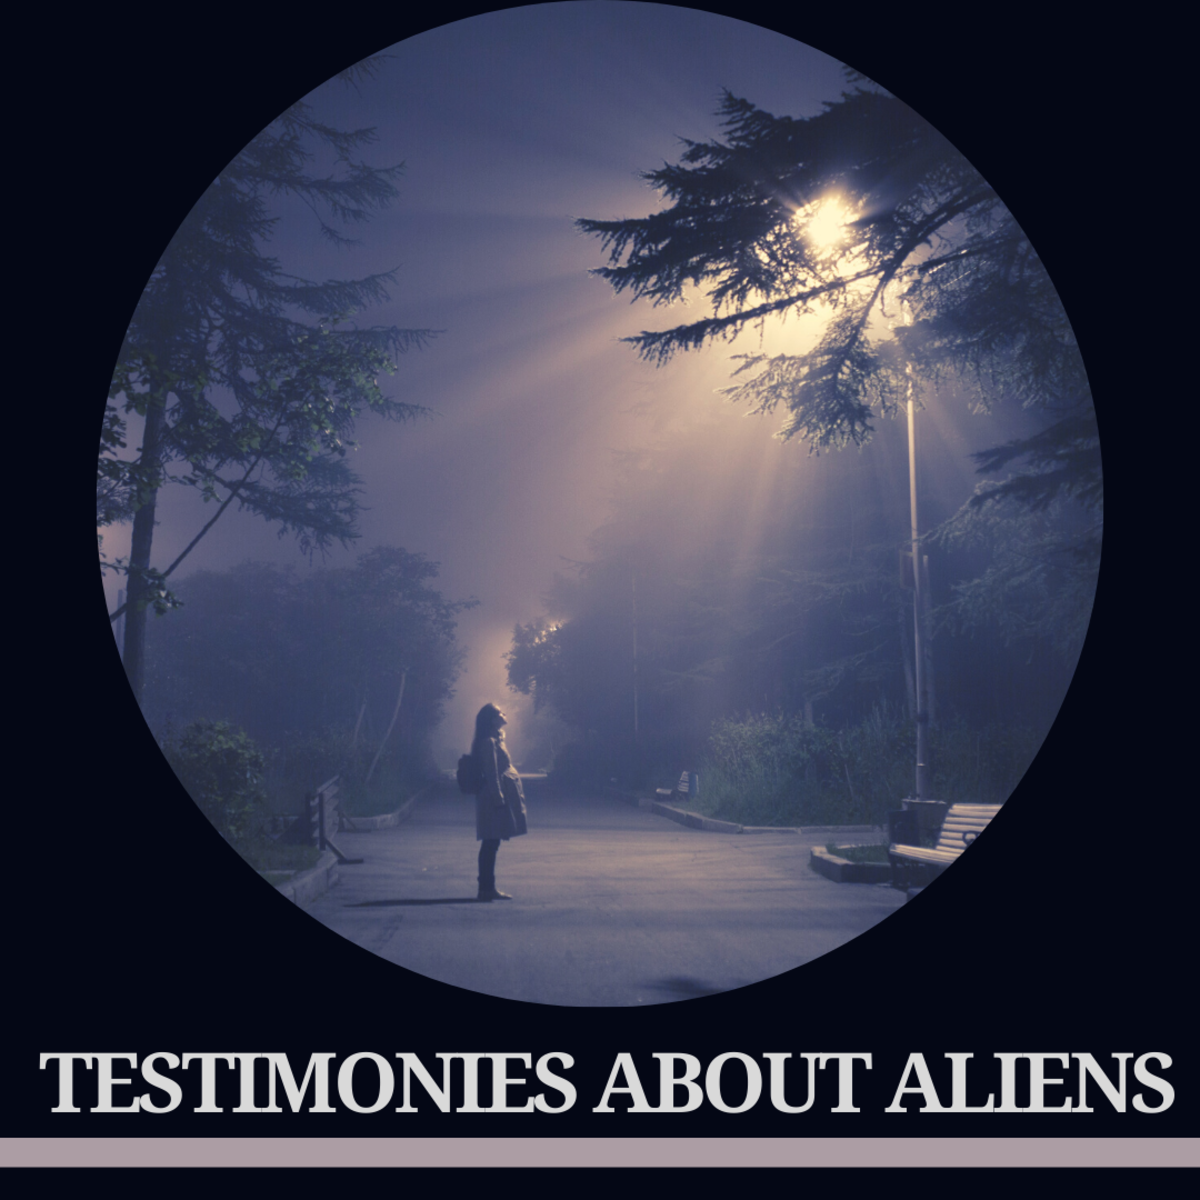 These are some of the most credible UFO testimonials on record.